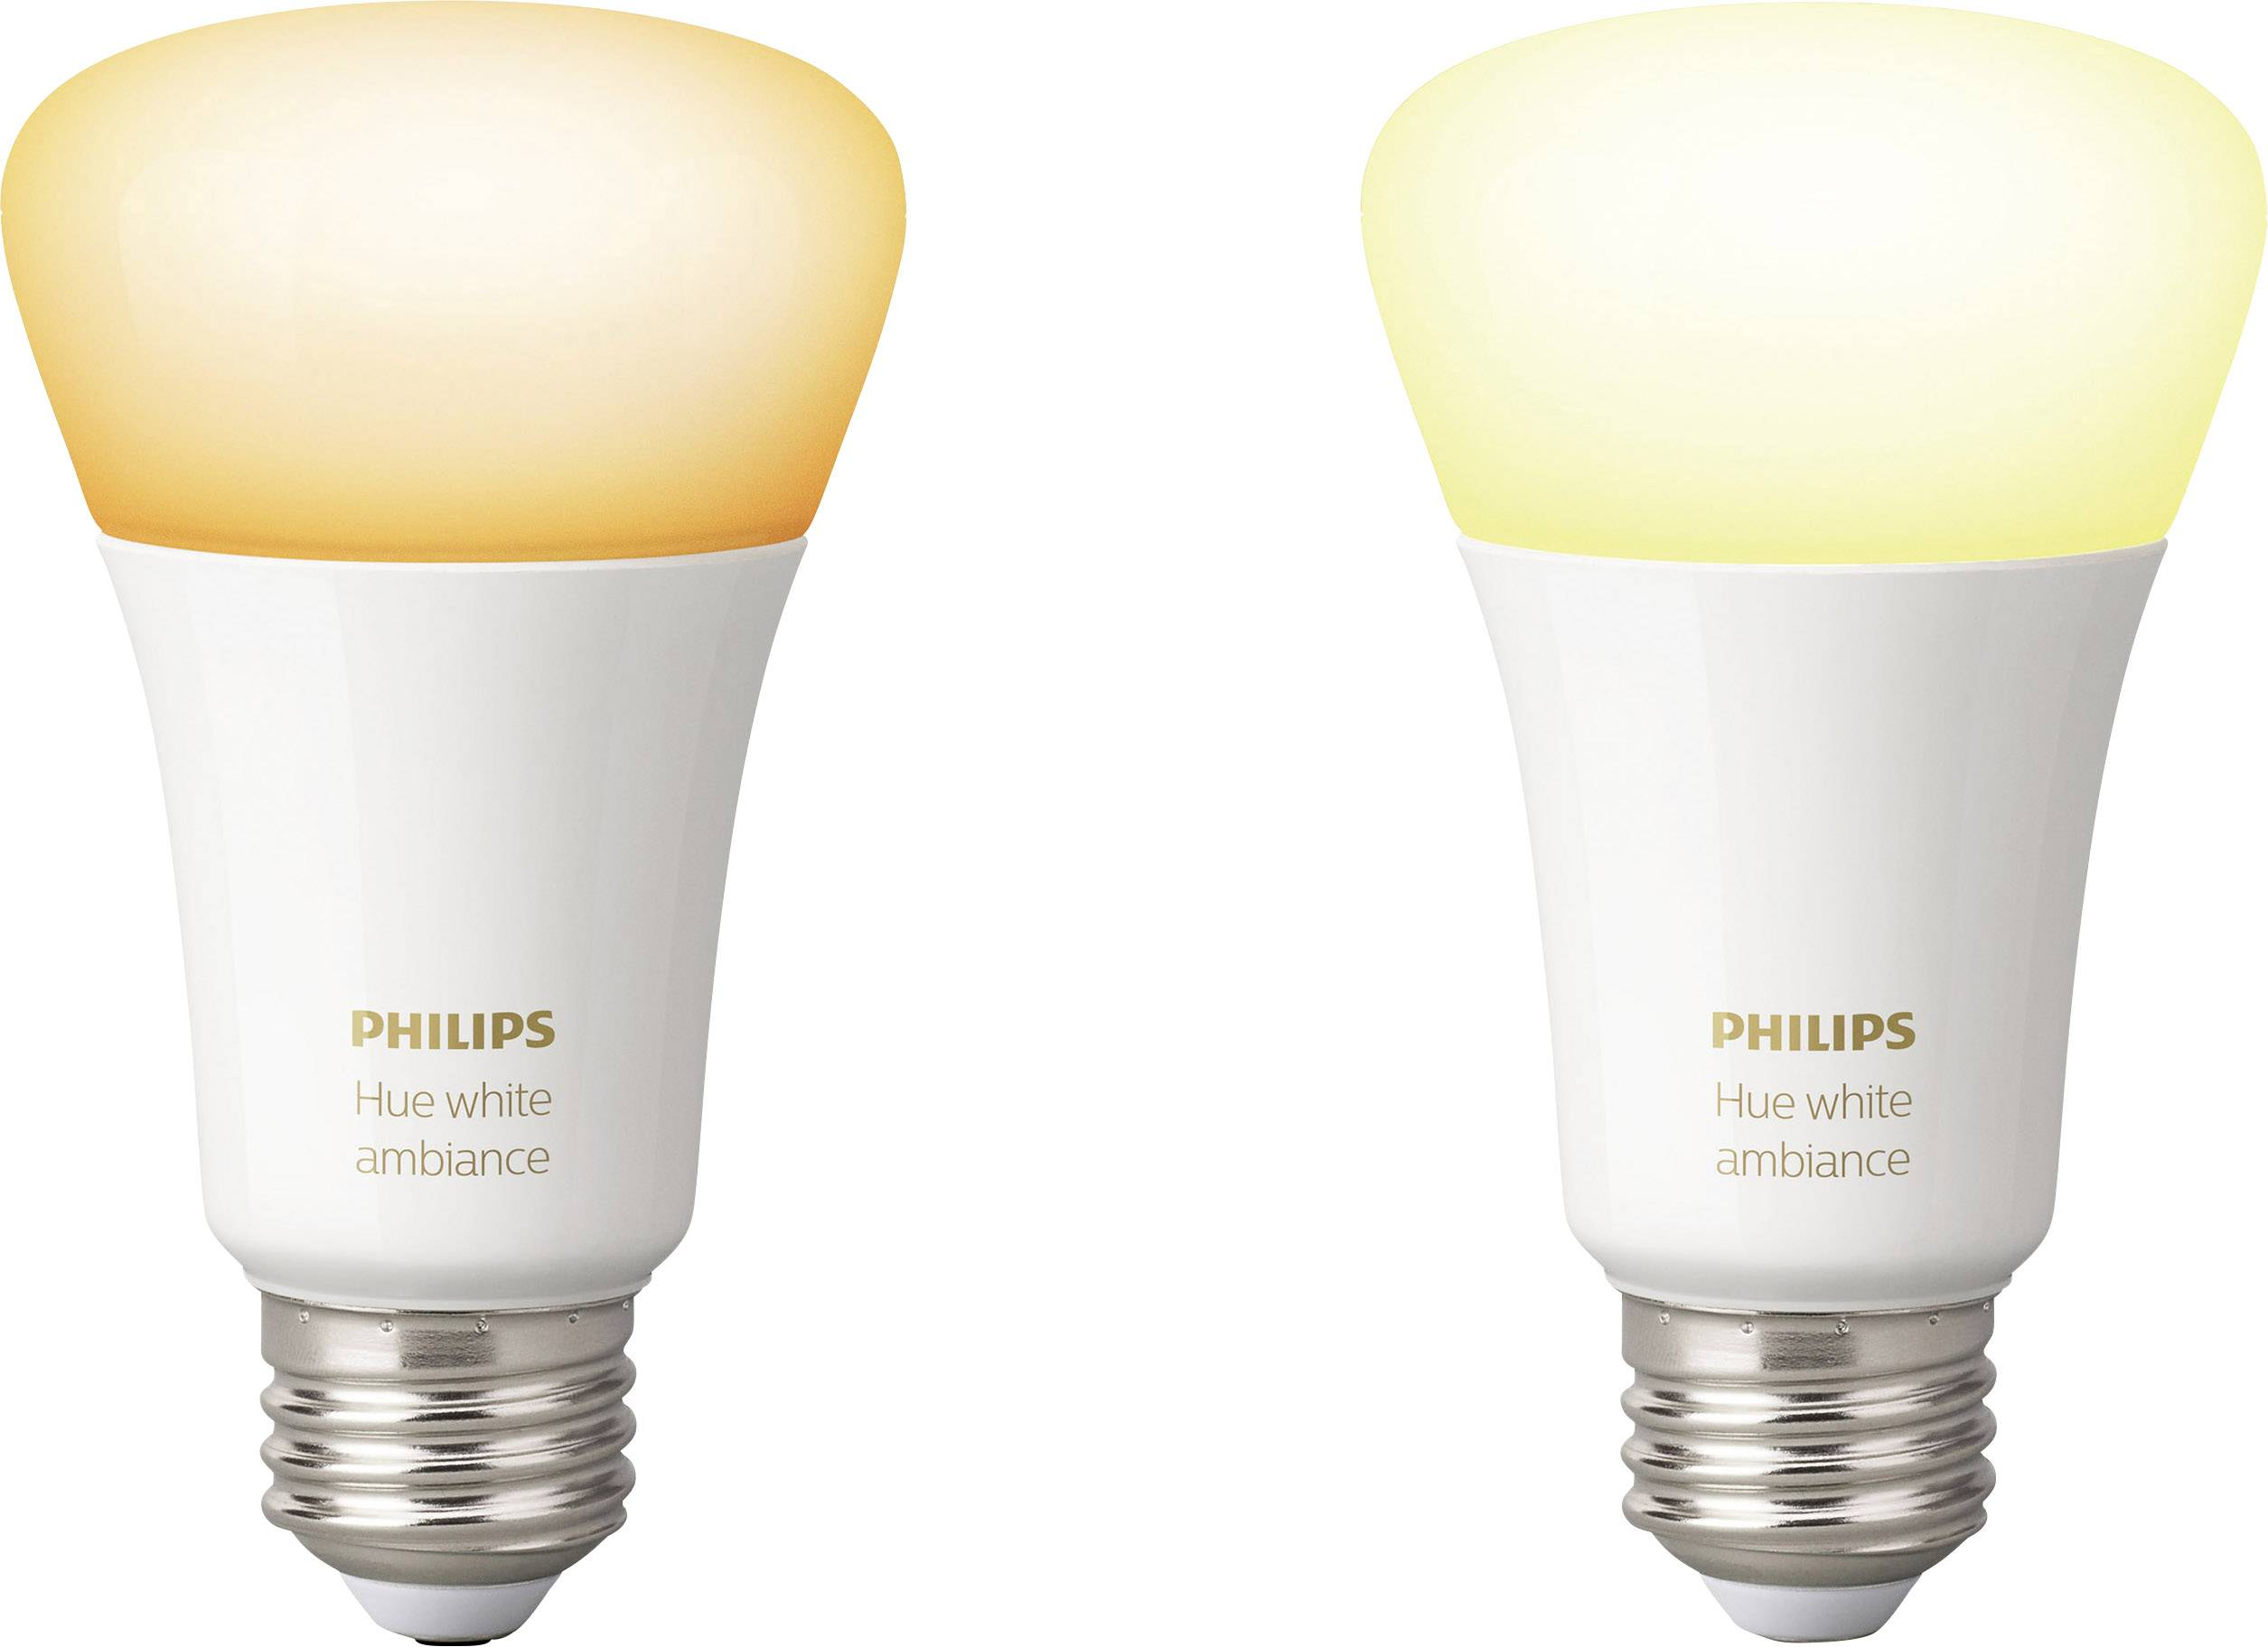 Led Leuchtmittel E27 Kaltweiß Philips Lighting Hue Led Leuchtmittel 2er Set White Ambiance Eek A A E E27 9 5w Warm Weiß Neutral Weiß Kalt Weiß